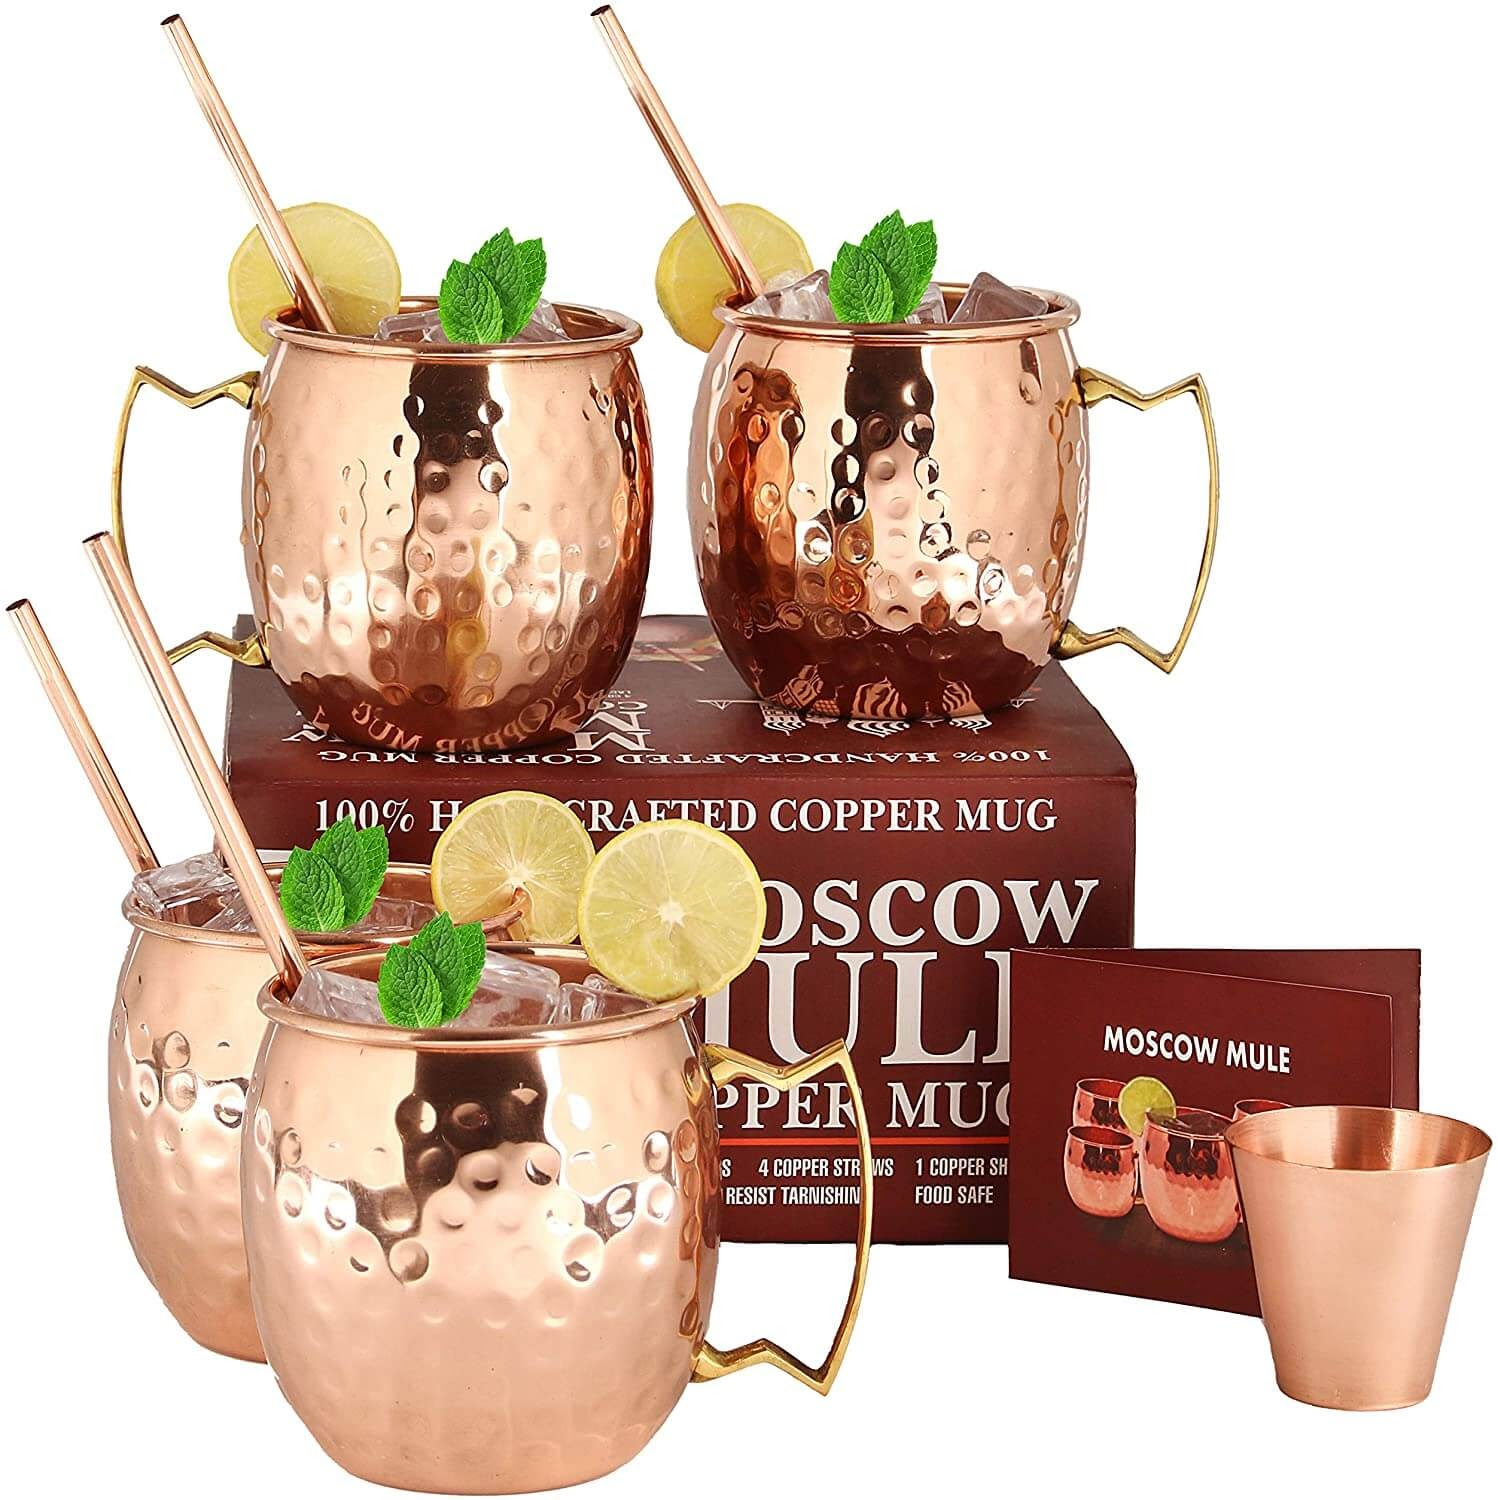 Moscow Mule Copper Mug Set